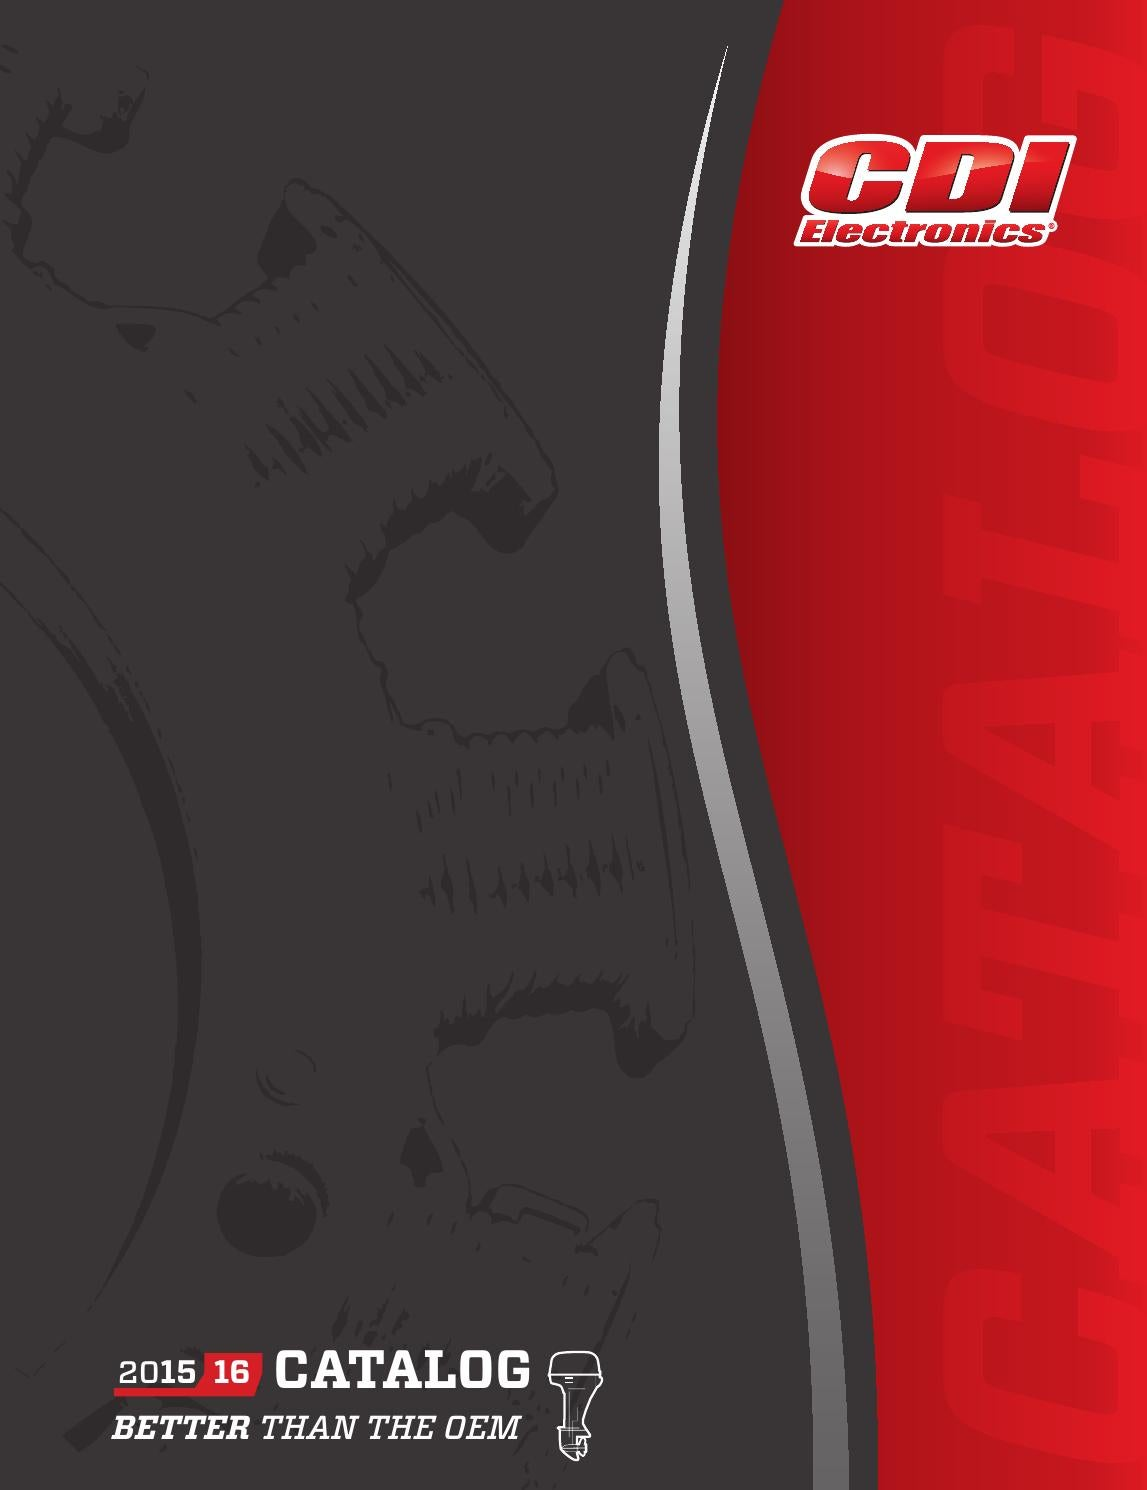 2015 2016 Cdi Electronics Catalog By 130 Looper 96 Wiring Diagram Issuu